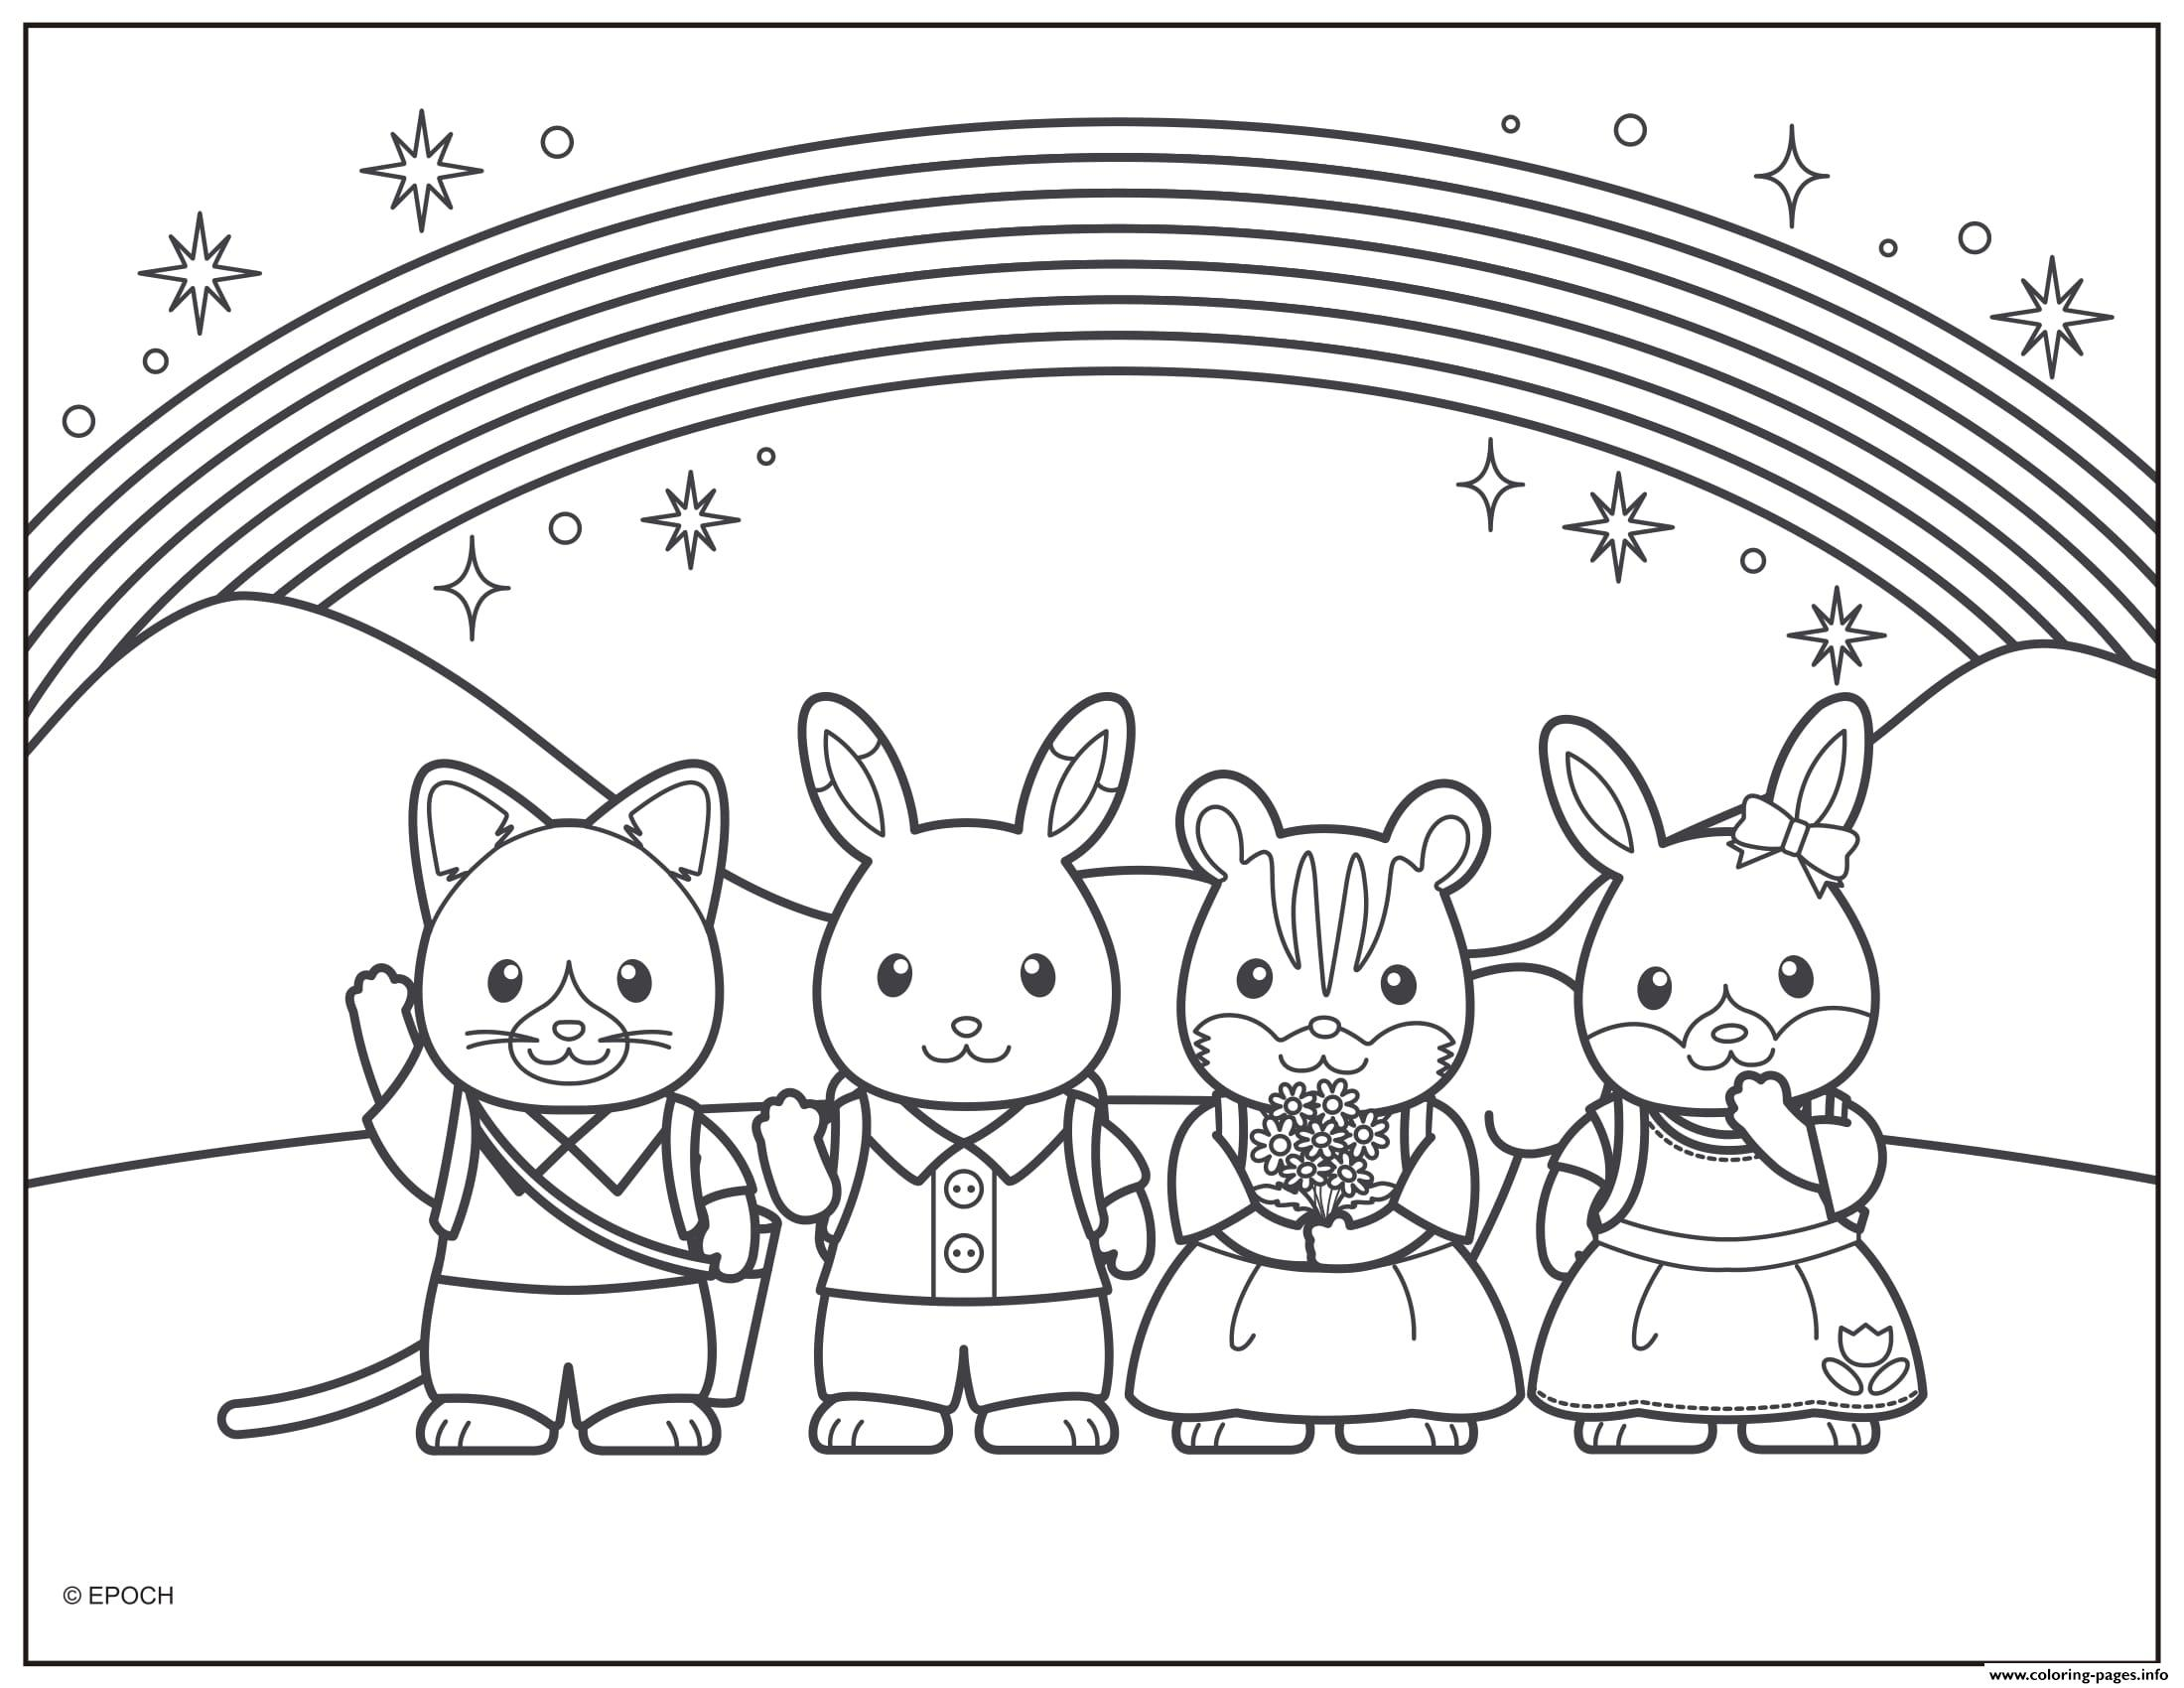 calico critters rainbow with friends coloring pages - Friends Coloring Pages